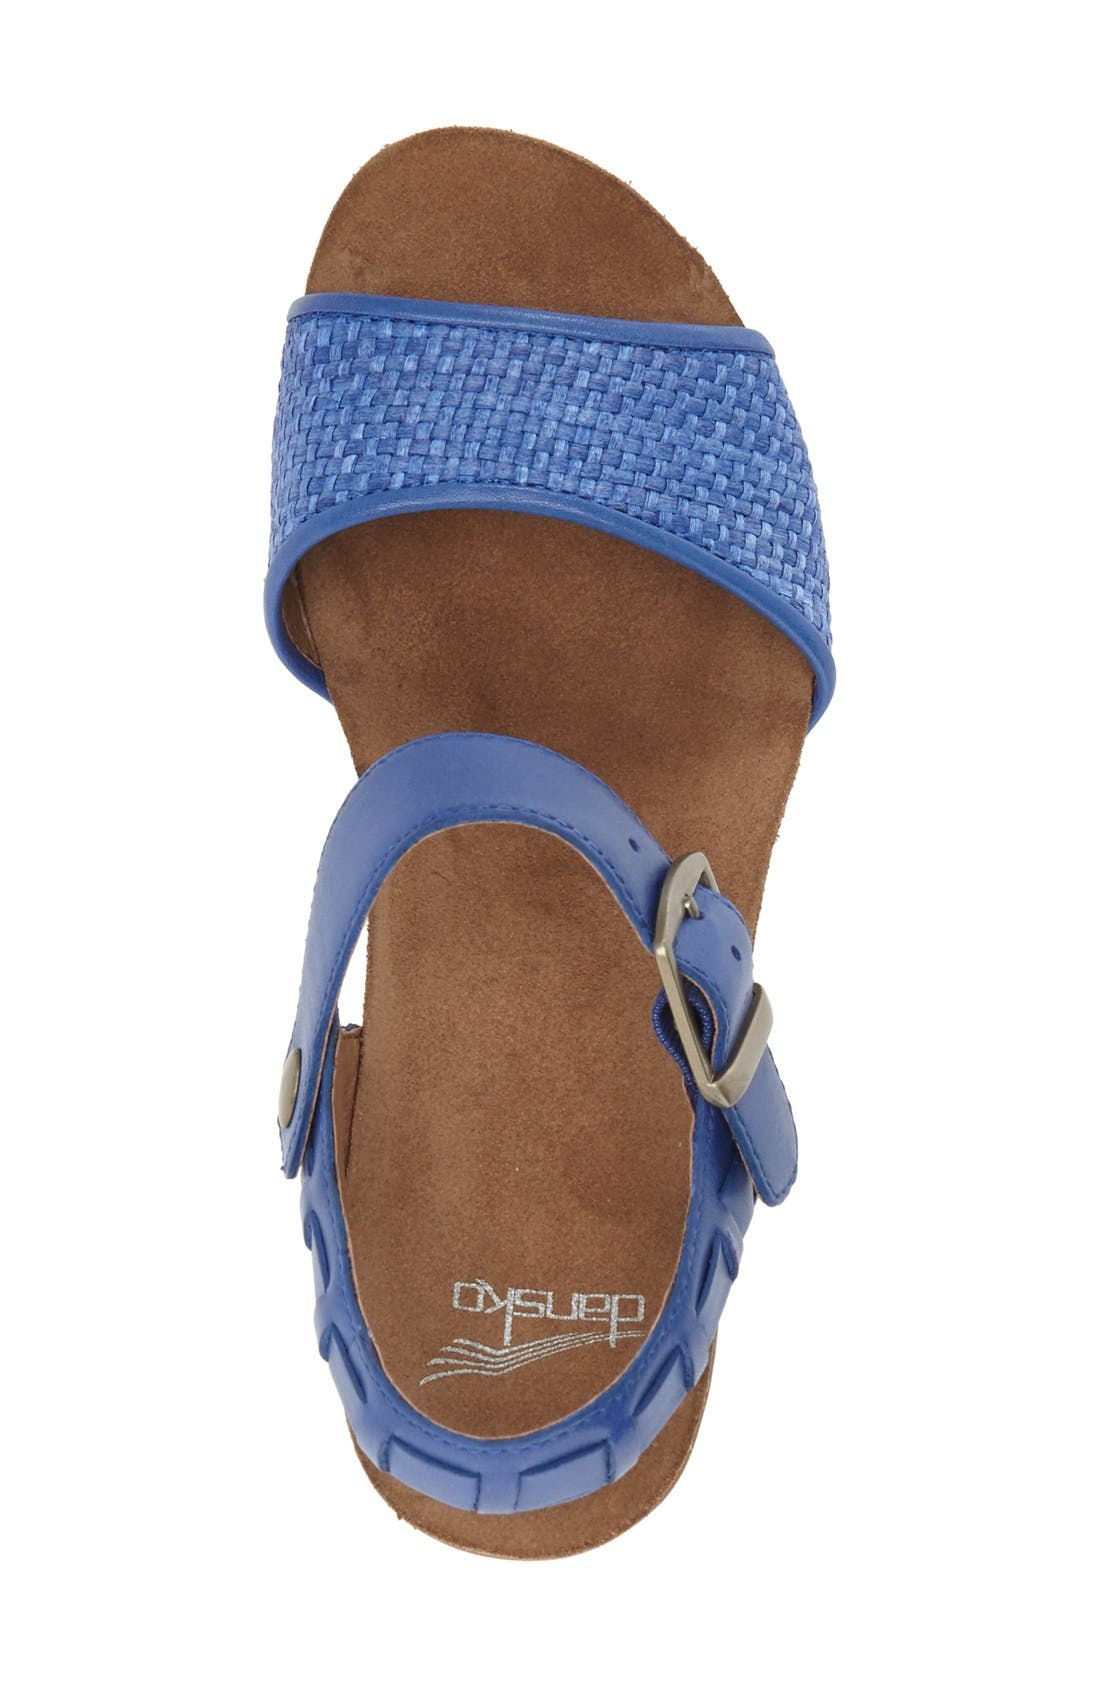 'Debby' Platform Sandal,                             Alternate thumbnail 9, color,